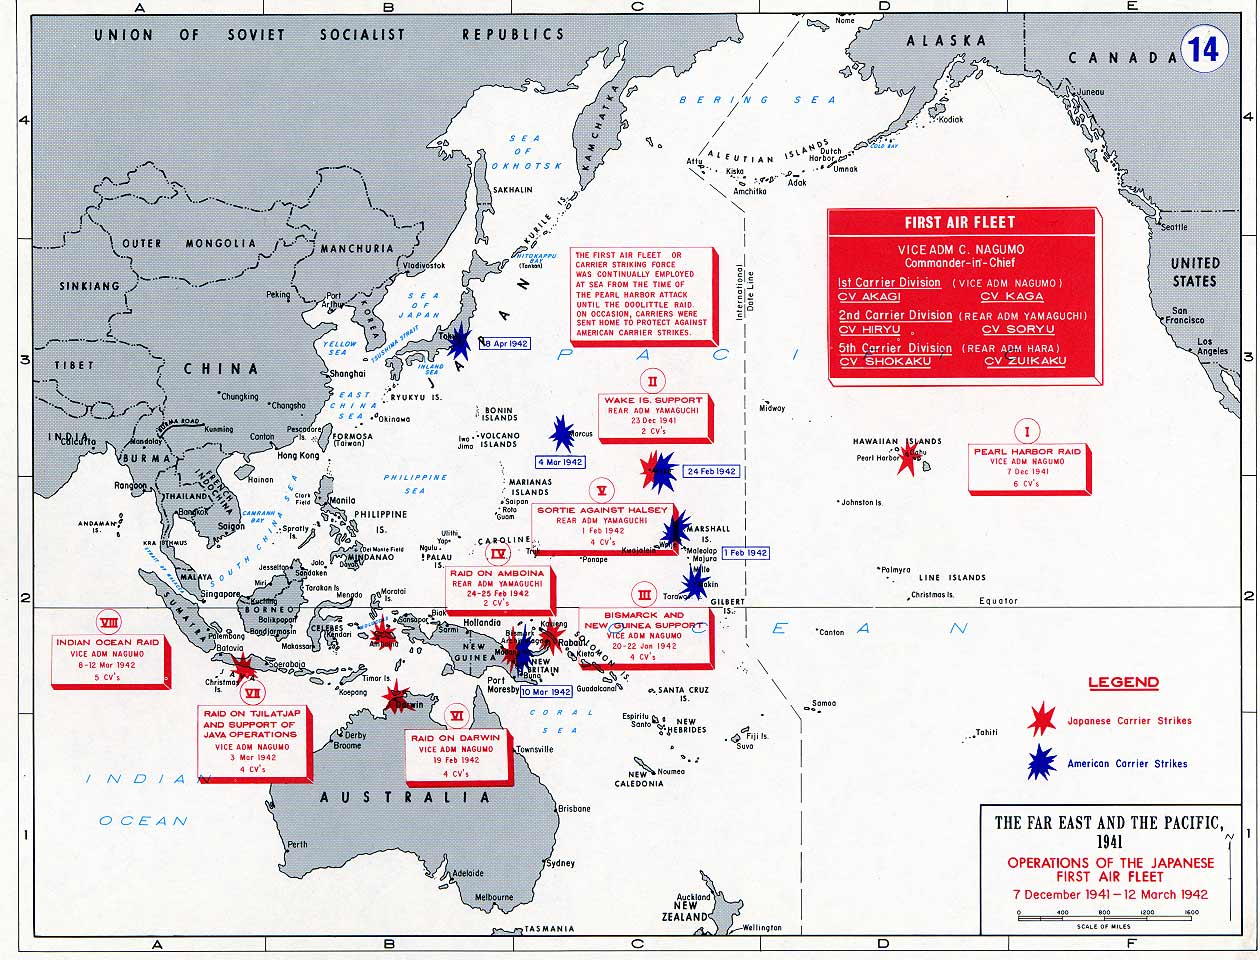 Japanese aircraft carriers operations 1941-42